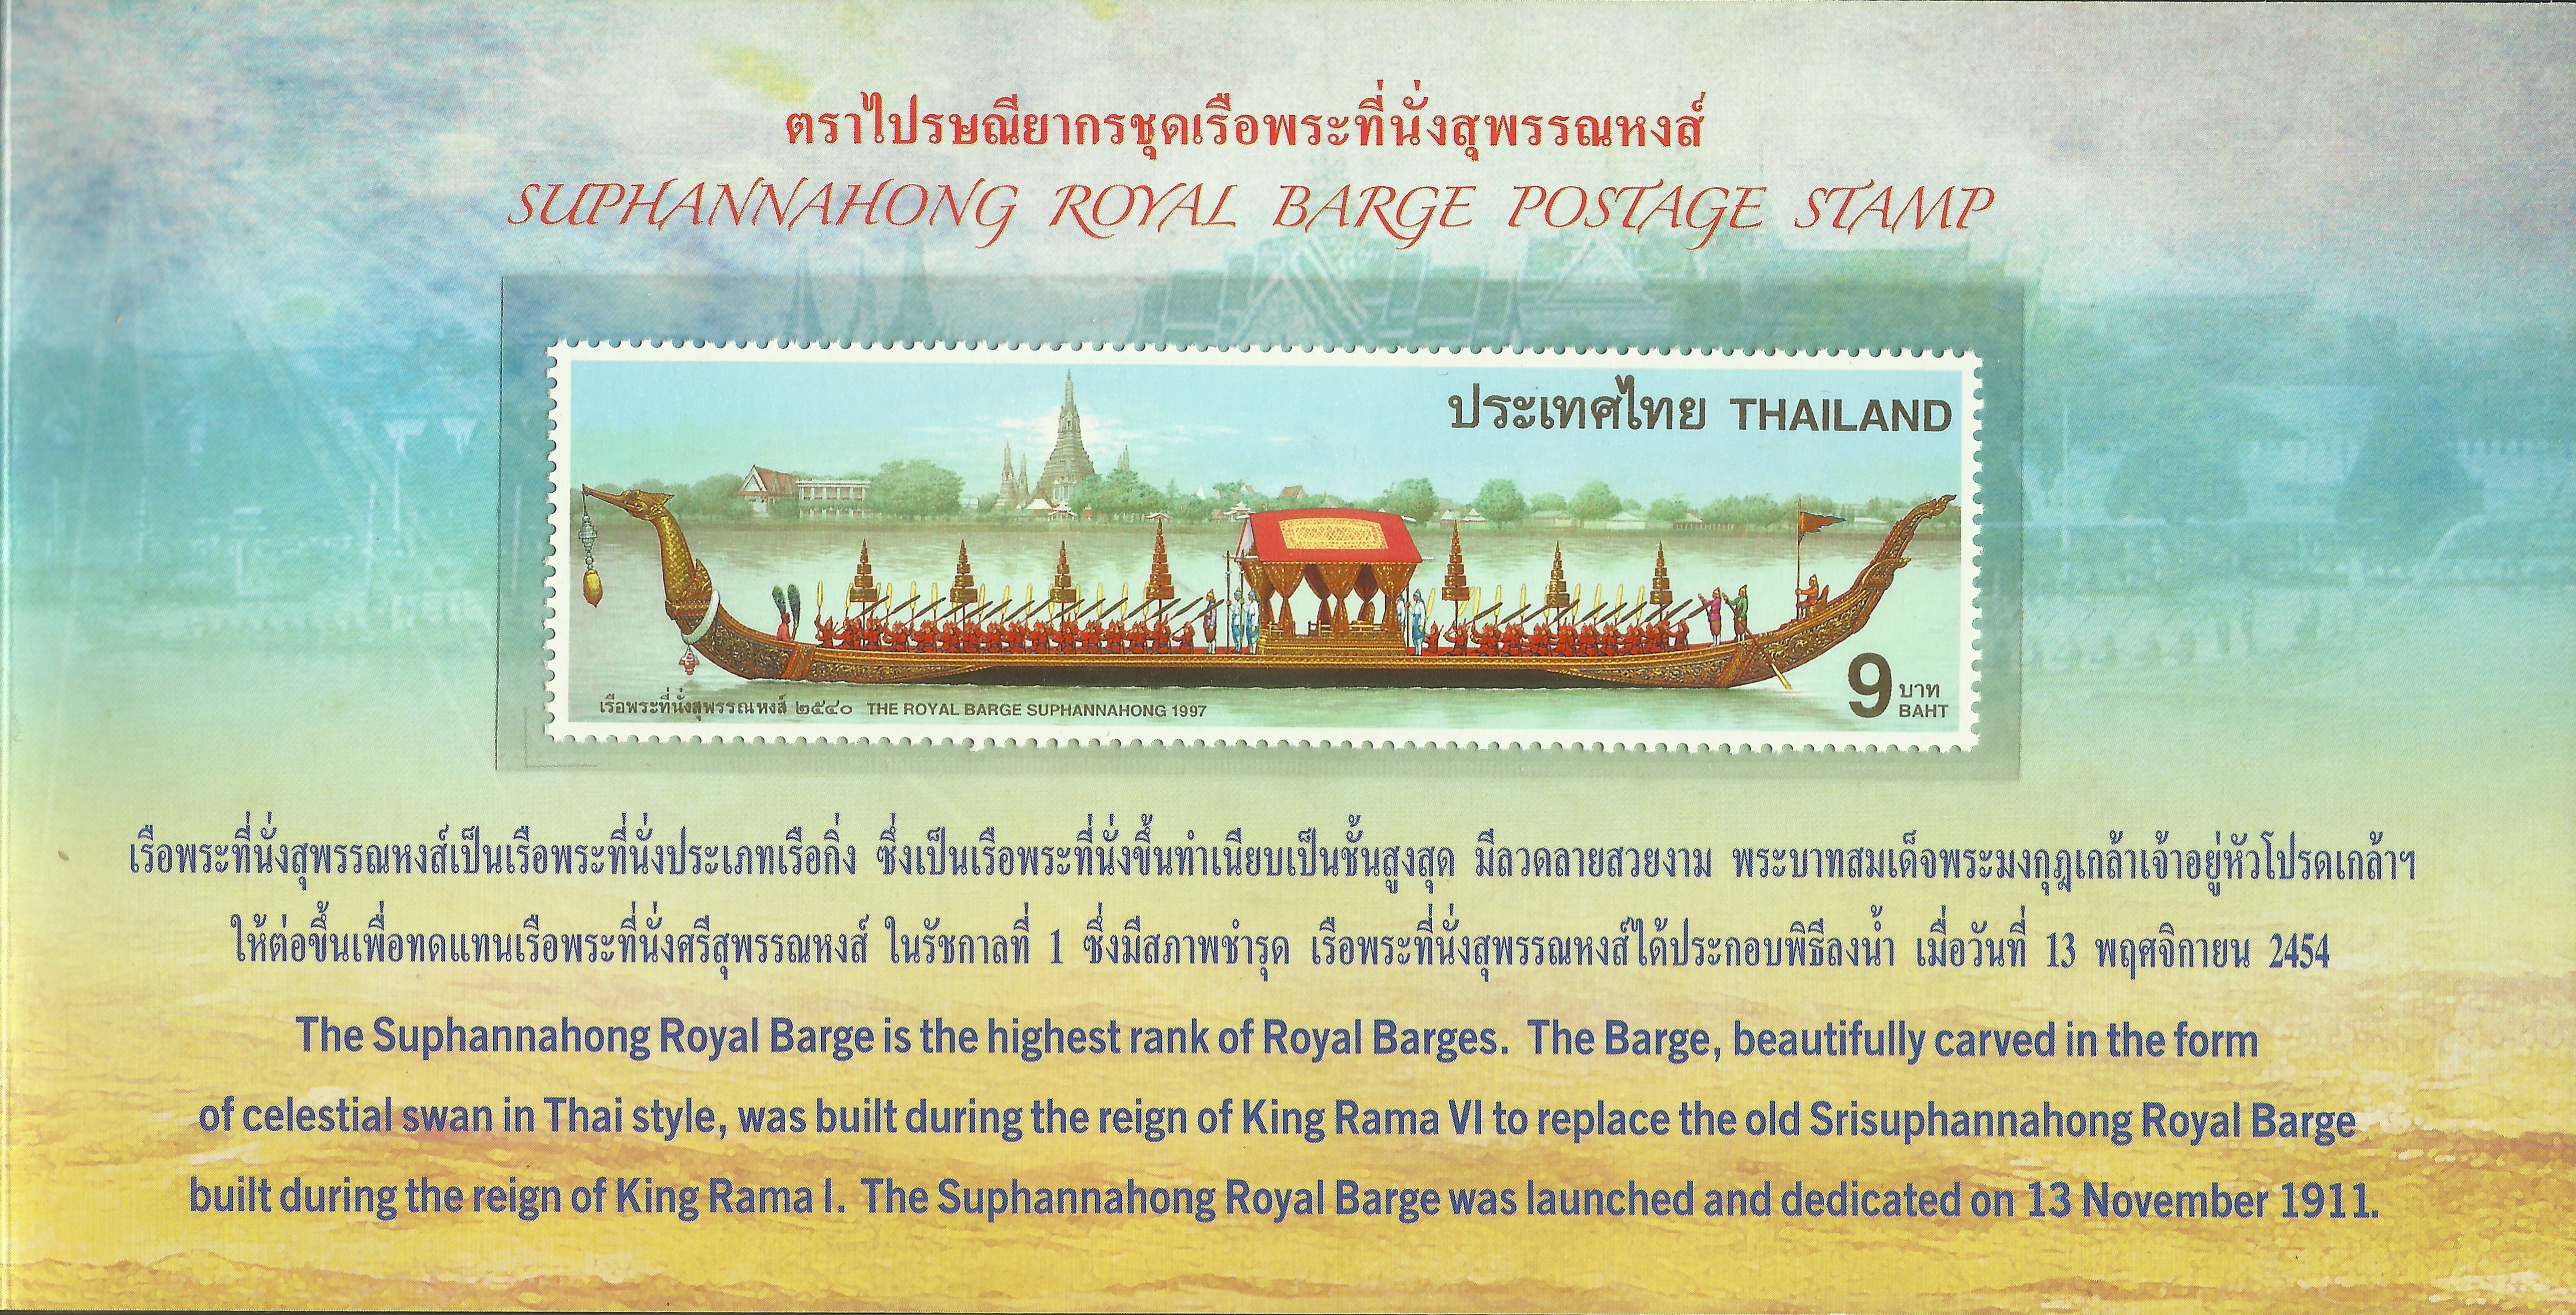 Thailand - Scott #1776 (1997) as displayed in presentation pack produced by Thailand Post